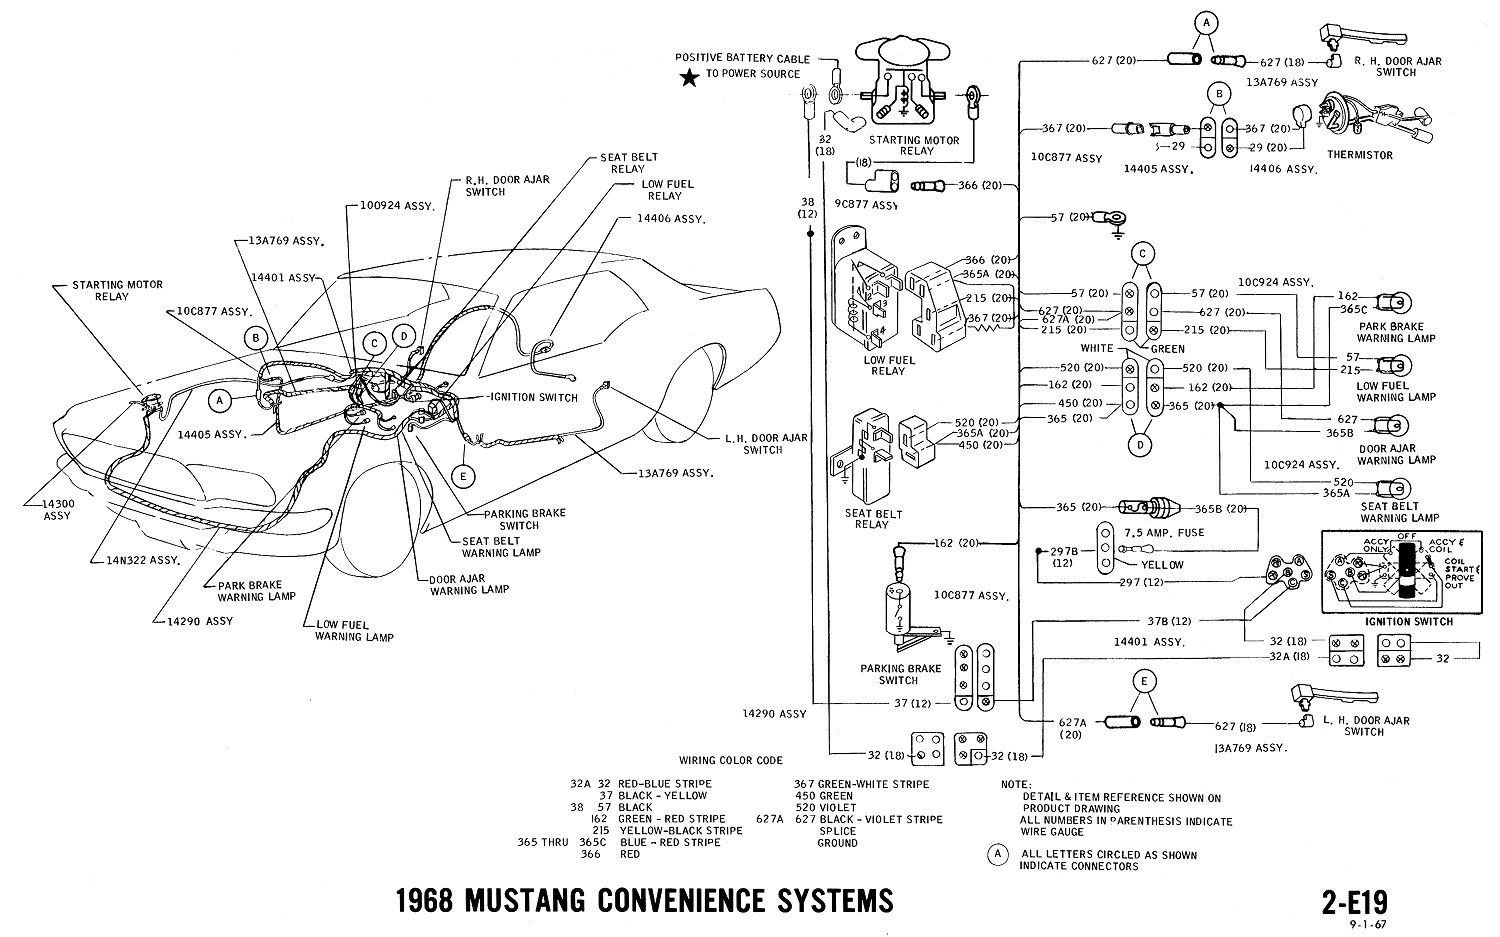 1968 mustang wiring diagram convenience systems 65 mustang dash wiring diagram 1965 ford mustang wiring diagram 1965 ford mustang wiring diagrams at couponss.co